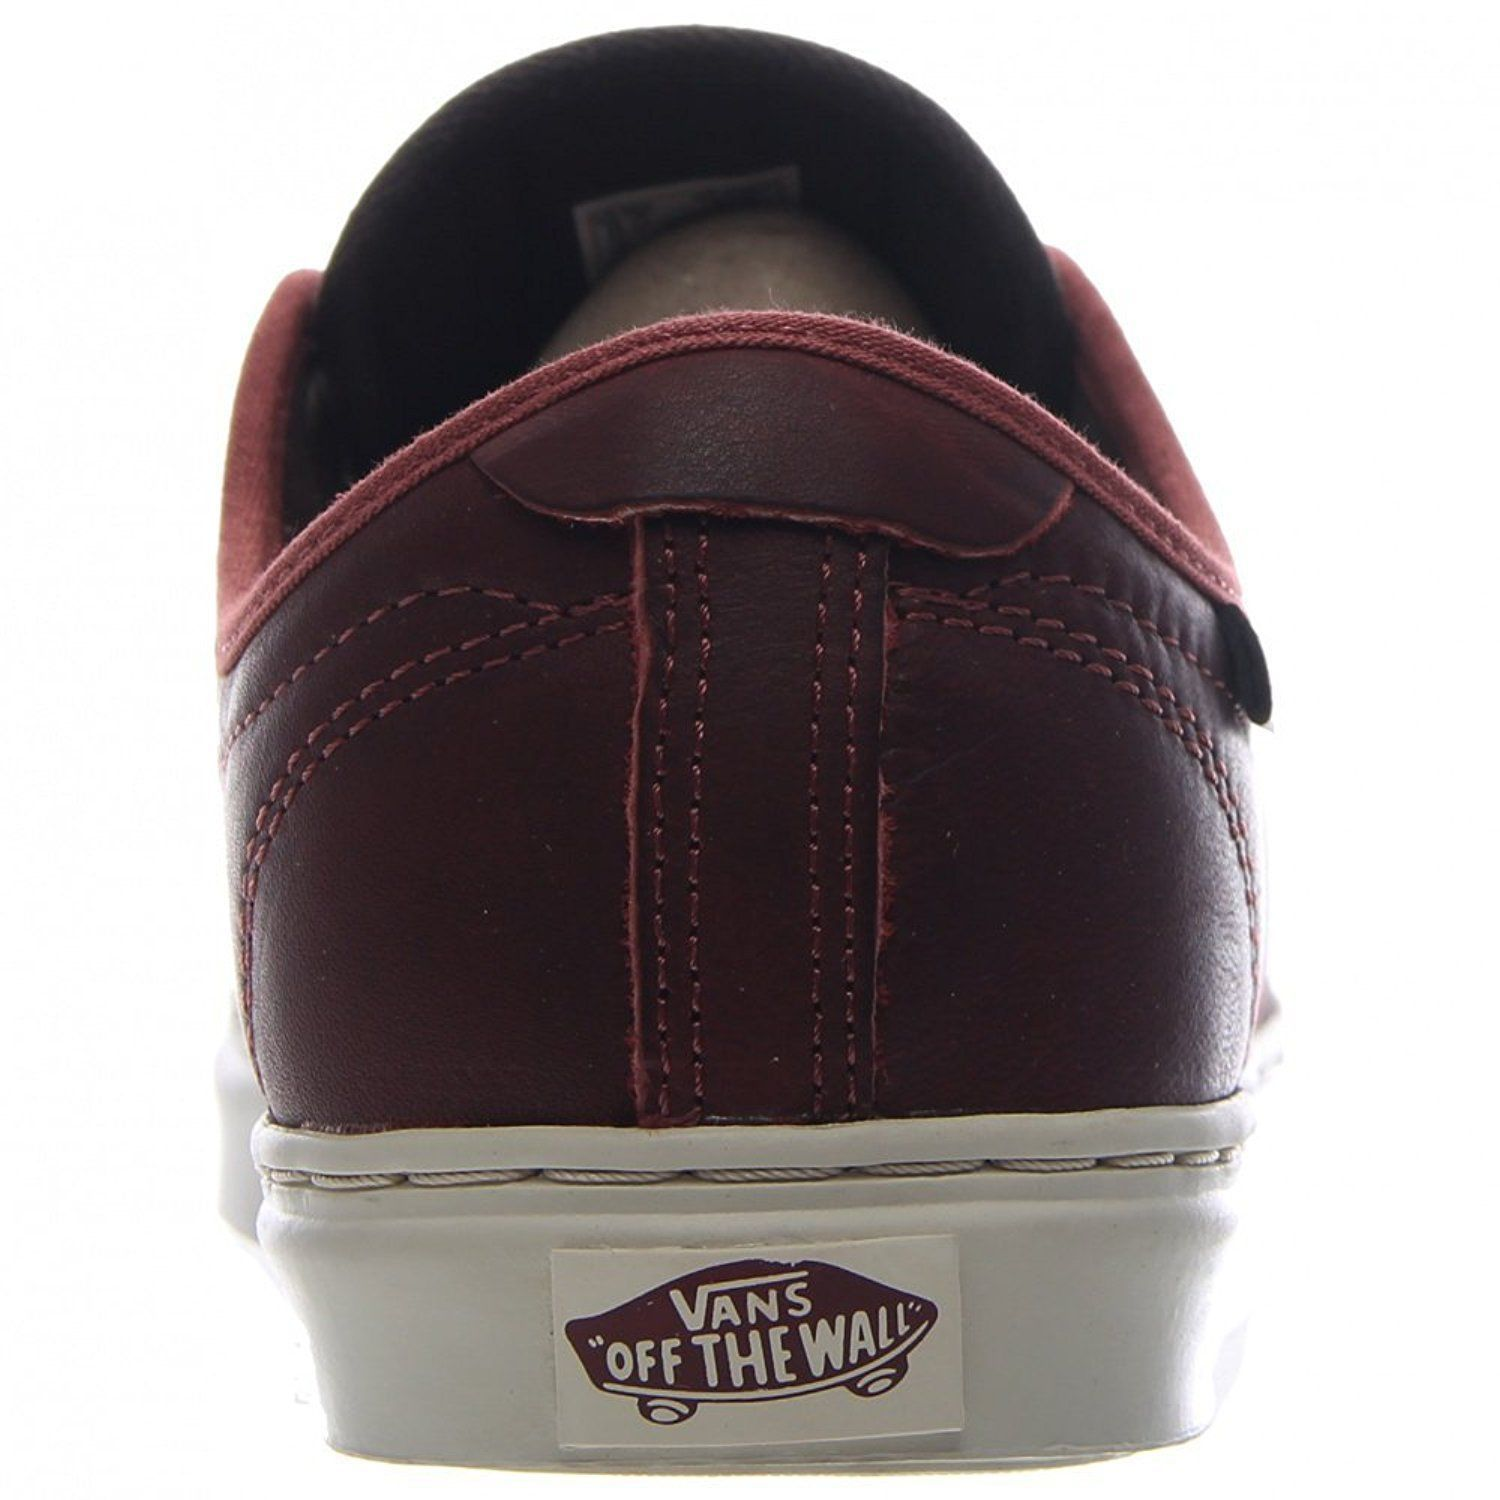 VANS OTW COLLECTION LUDLOW + LEATHER HENNA BROWN SHOES MENS SZ 7.5 BURGUNDY image 6